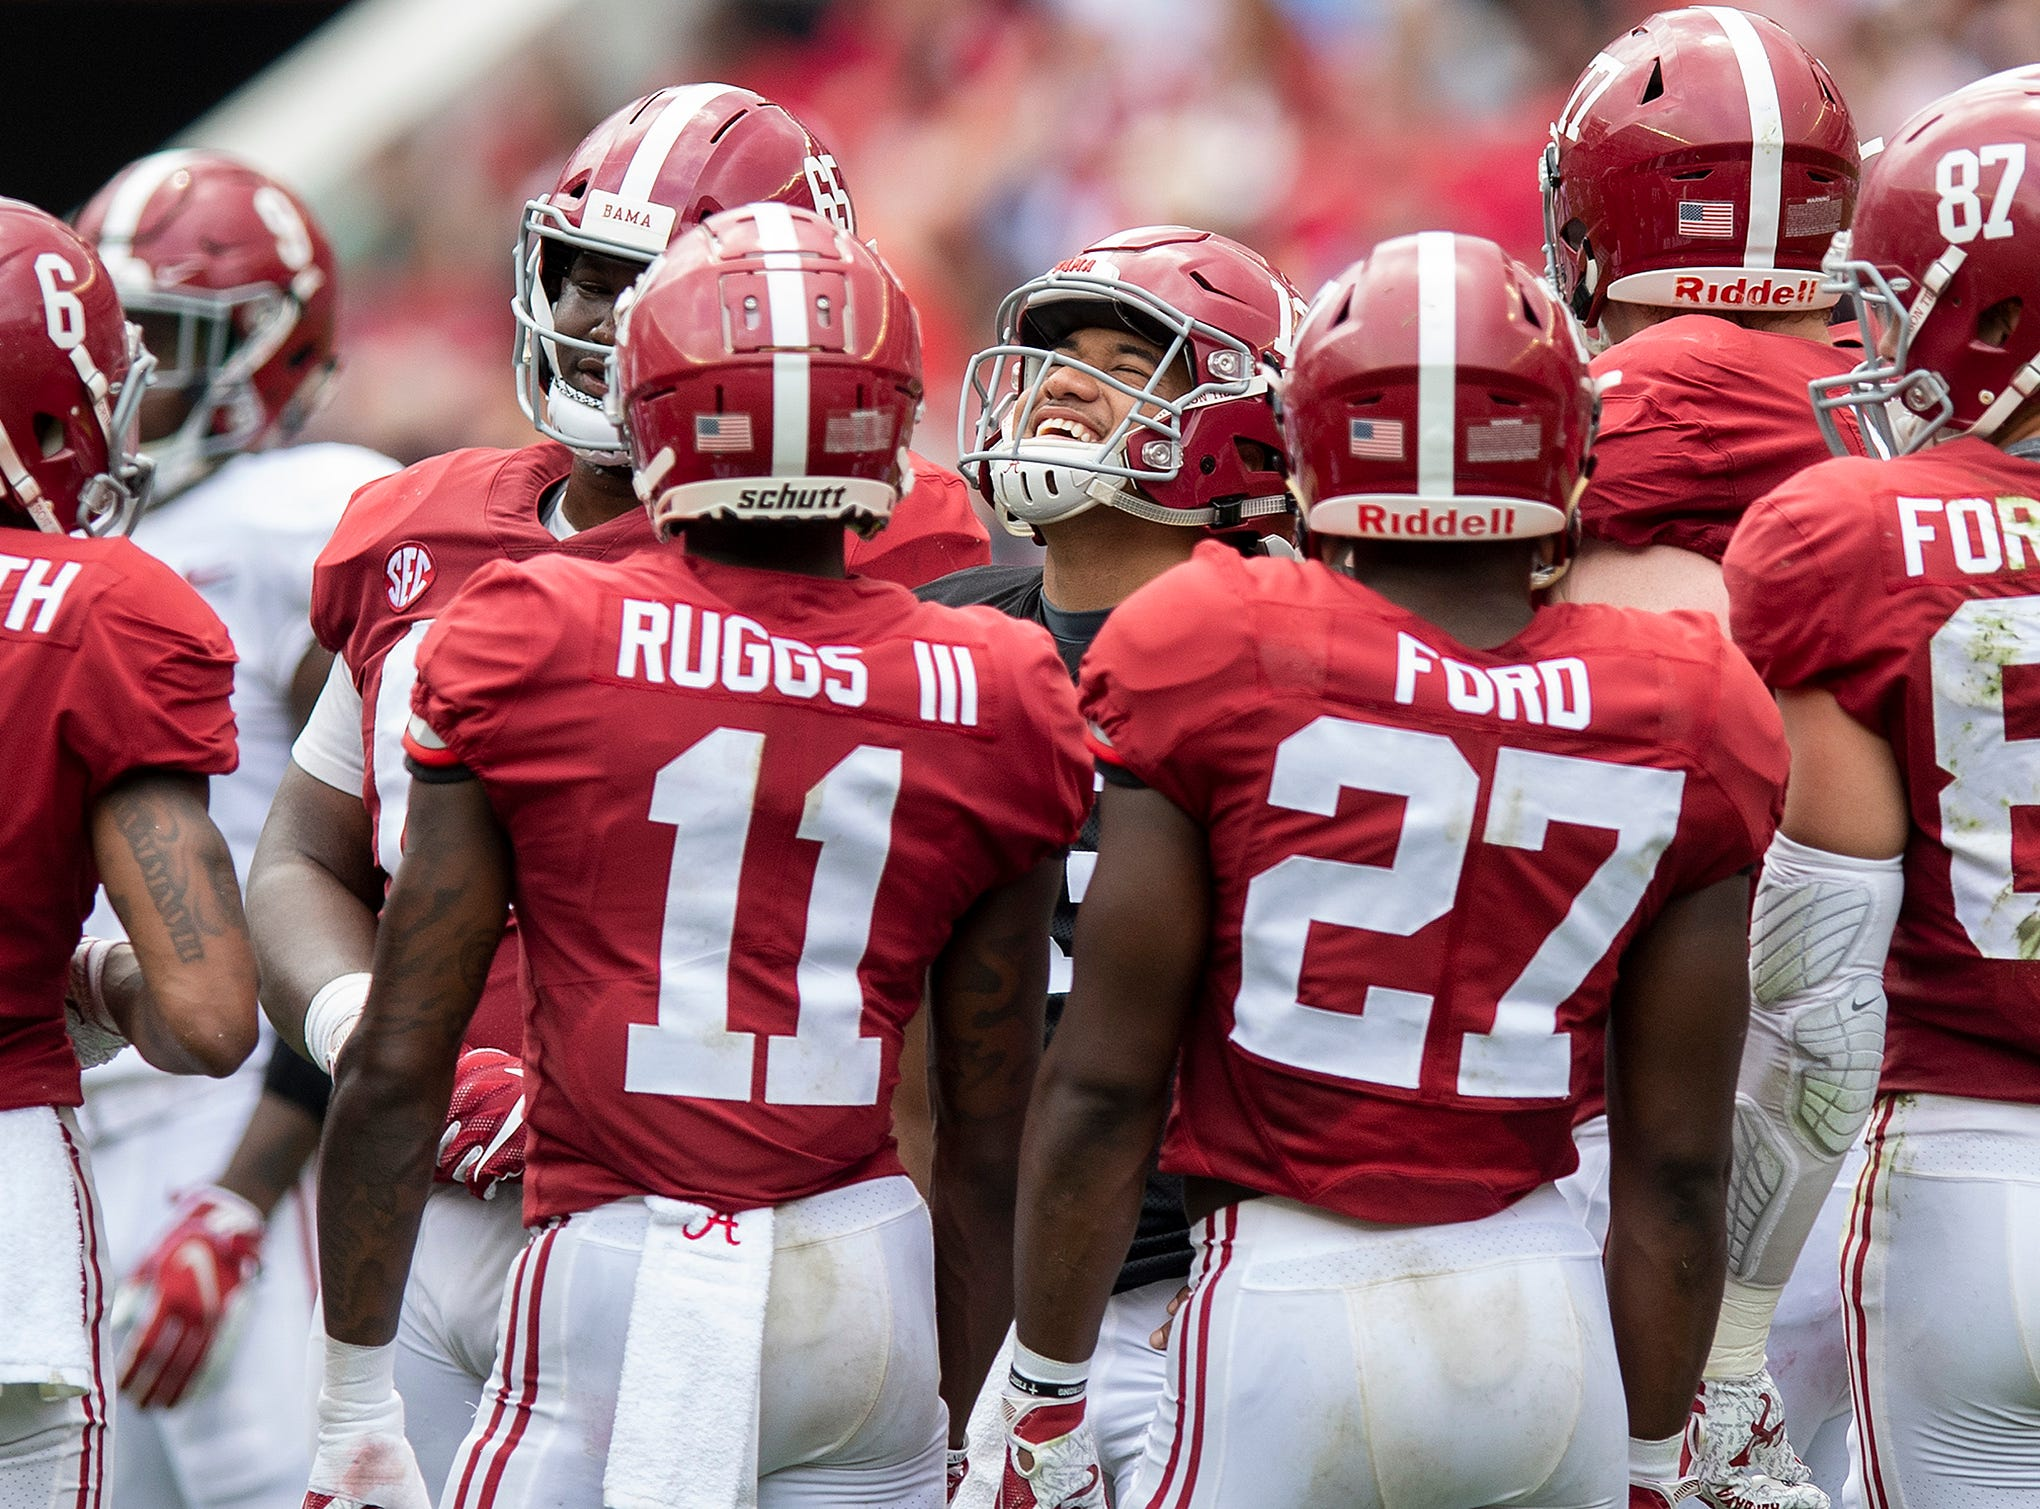 Alabama quarterback Tua Tagovailoa (13) laughs in the huddle during first half action in the Alabama A-Day spring football scrimmage game at Bryant Denny Stadium in Tuscaloosa, Ala., on Saturday April 13, 2019.